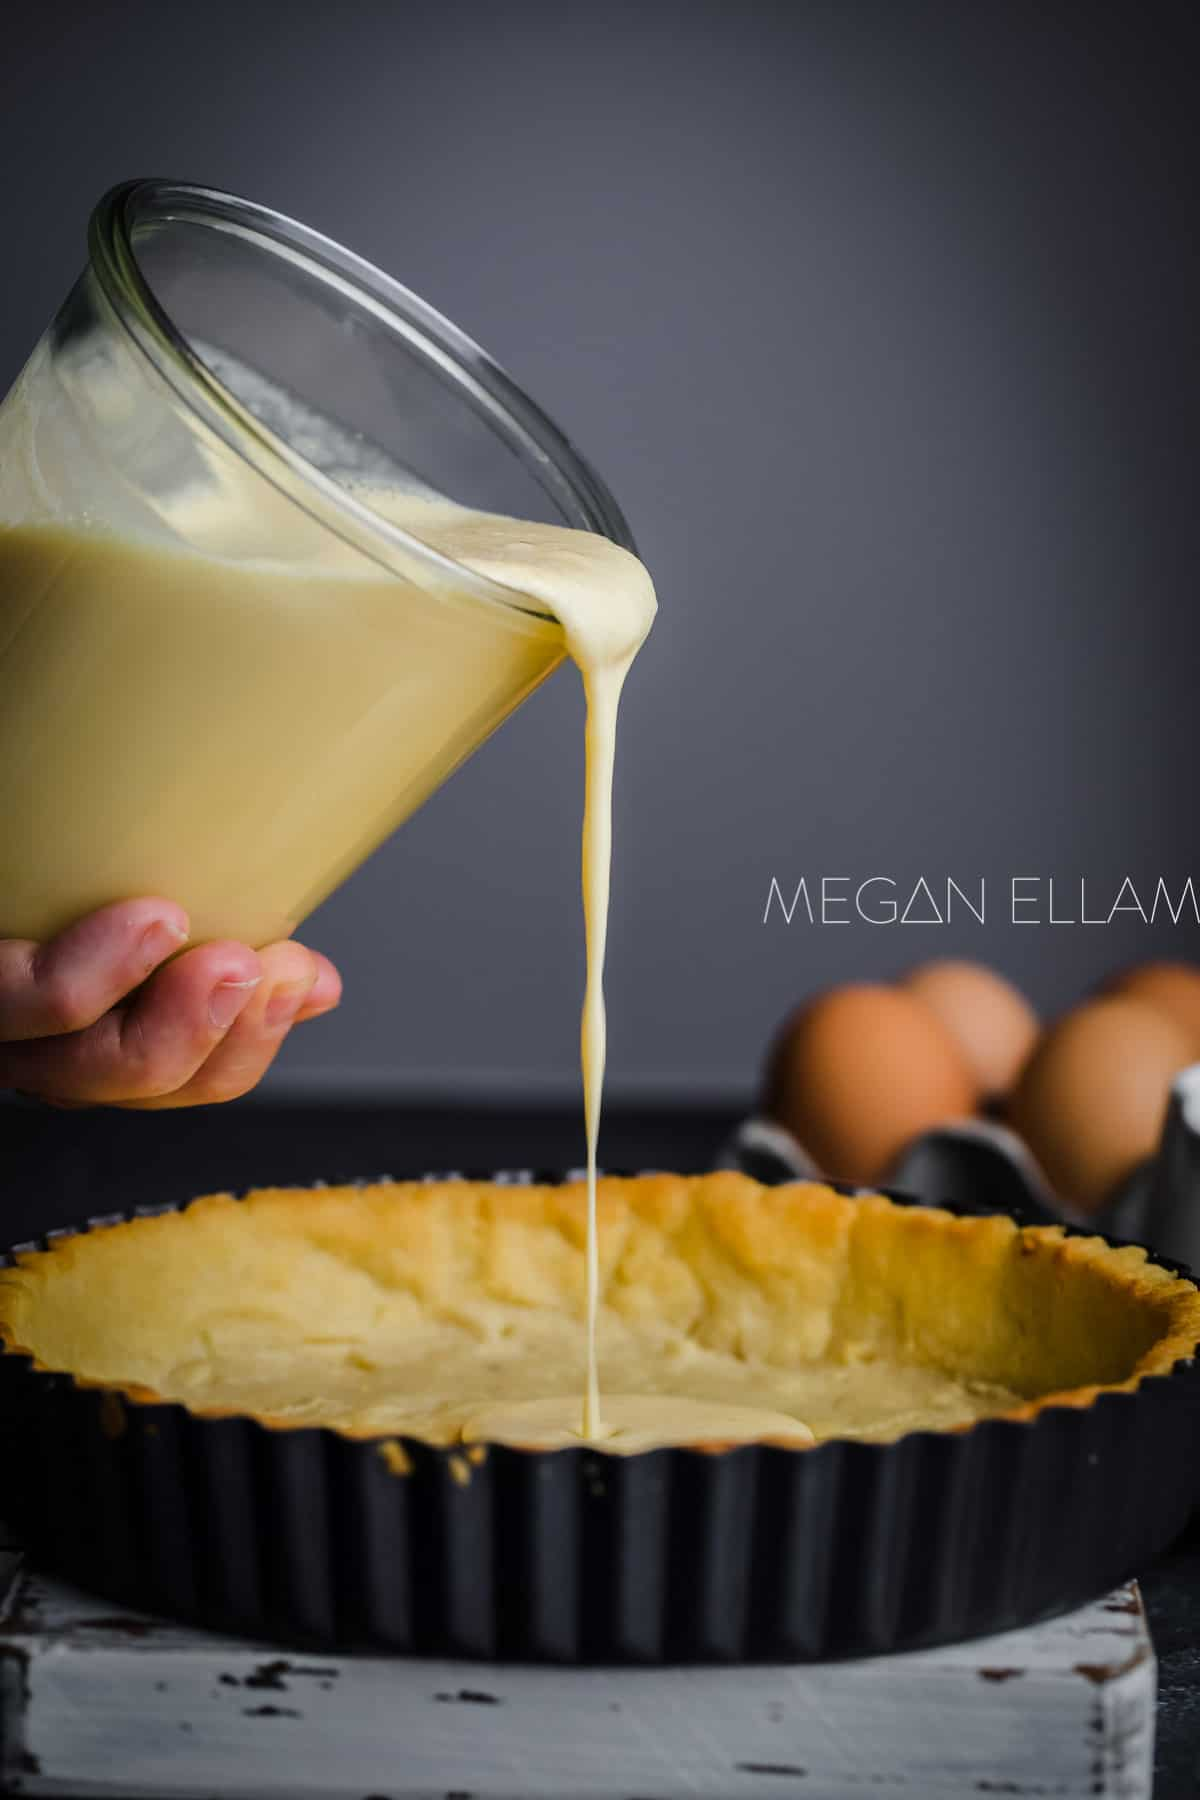 Keto custard being poured into a pie shell.